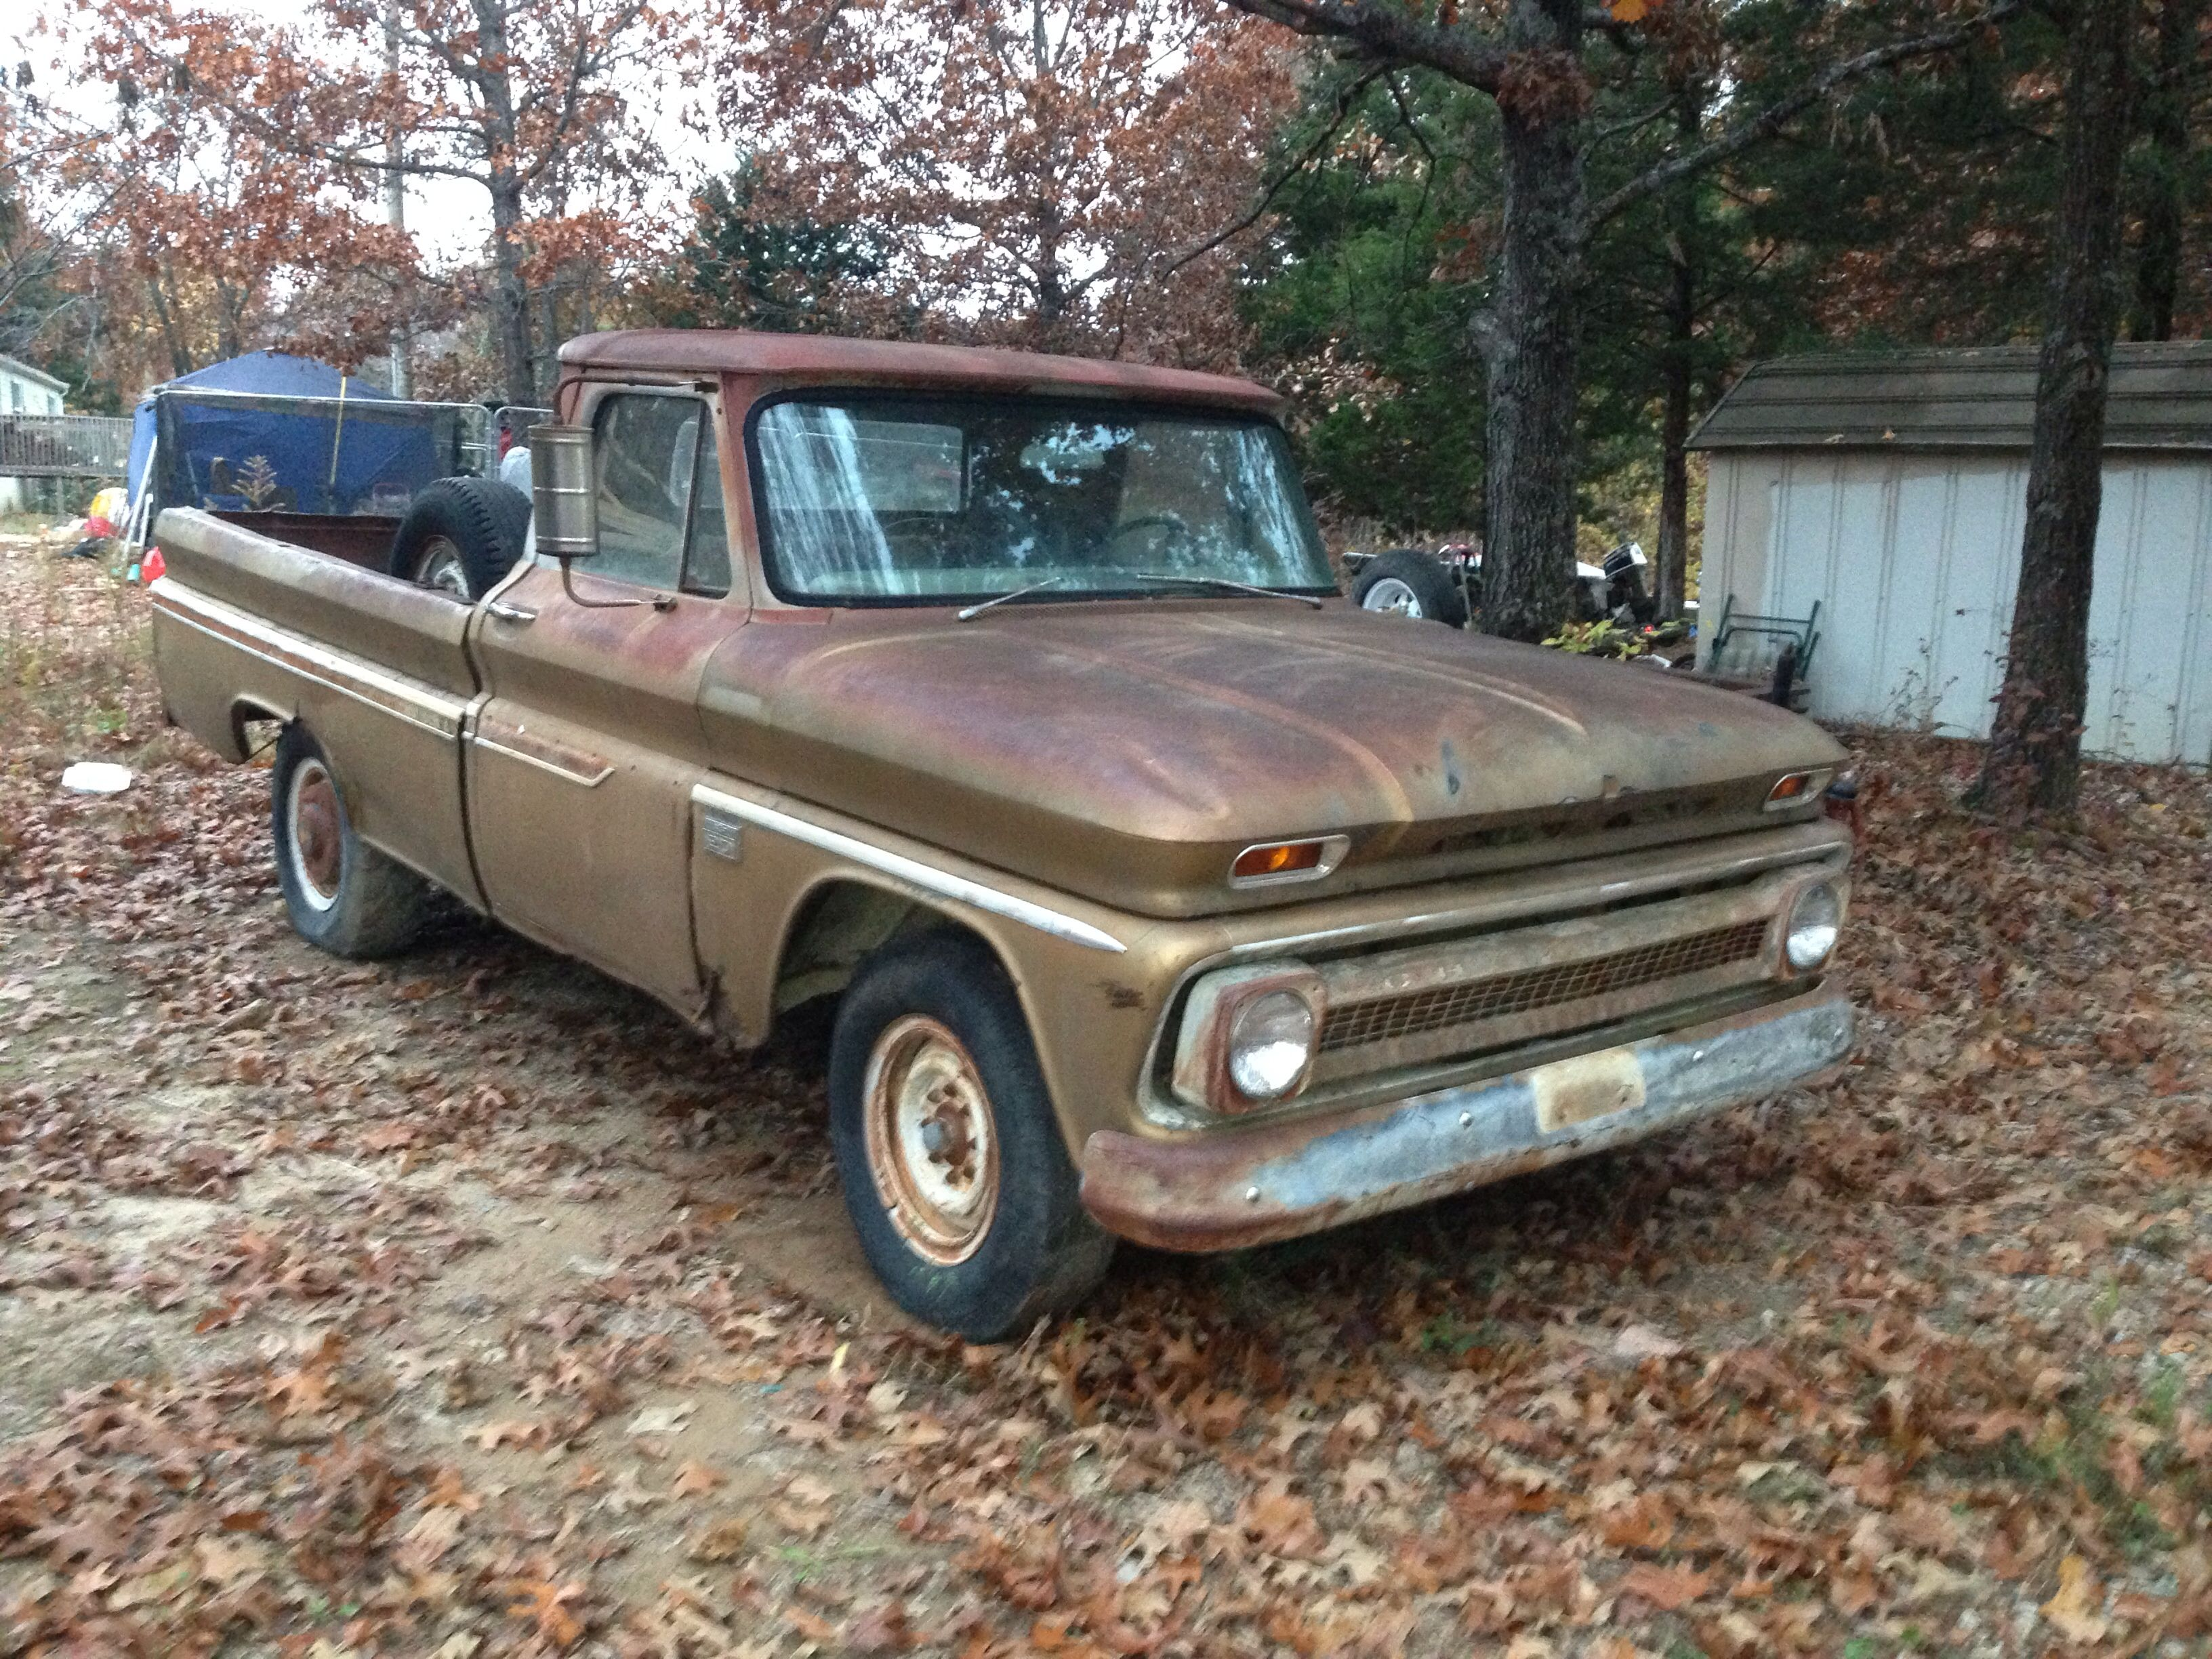 66 chevy C20 no title just a bill of sale but love the patina on ...